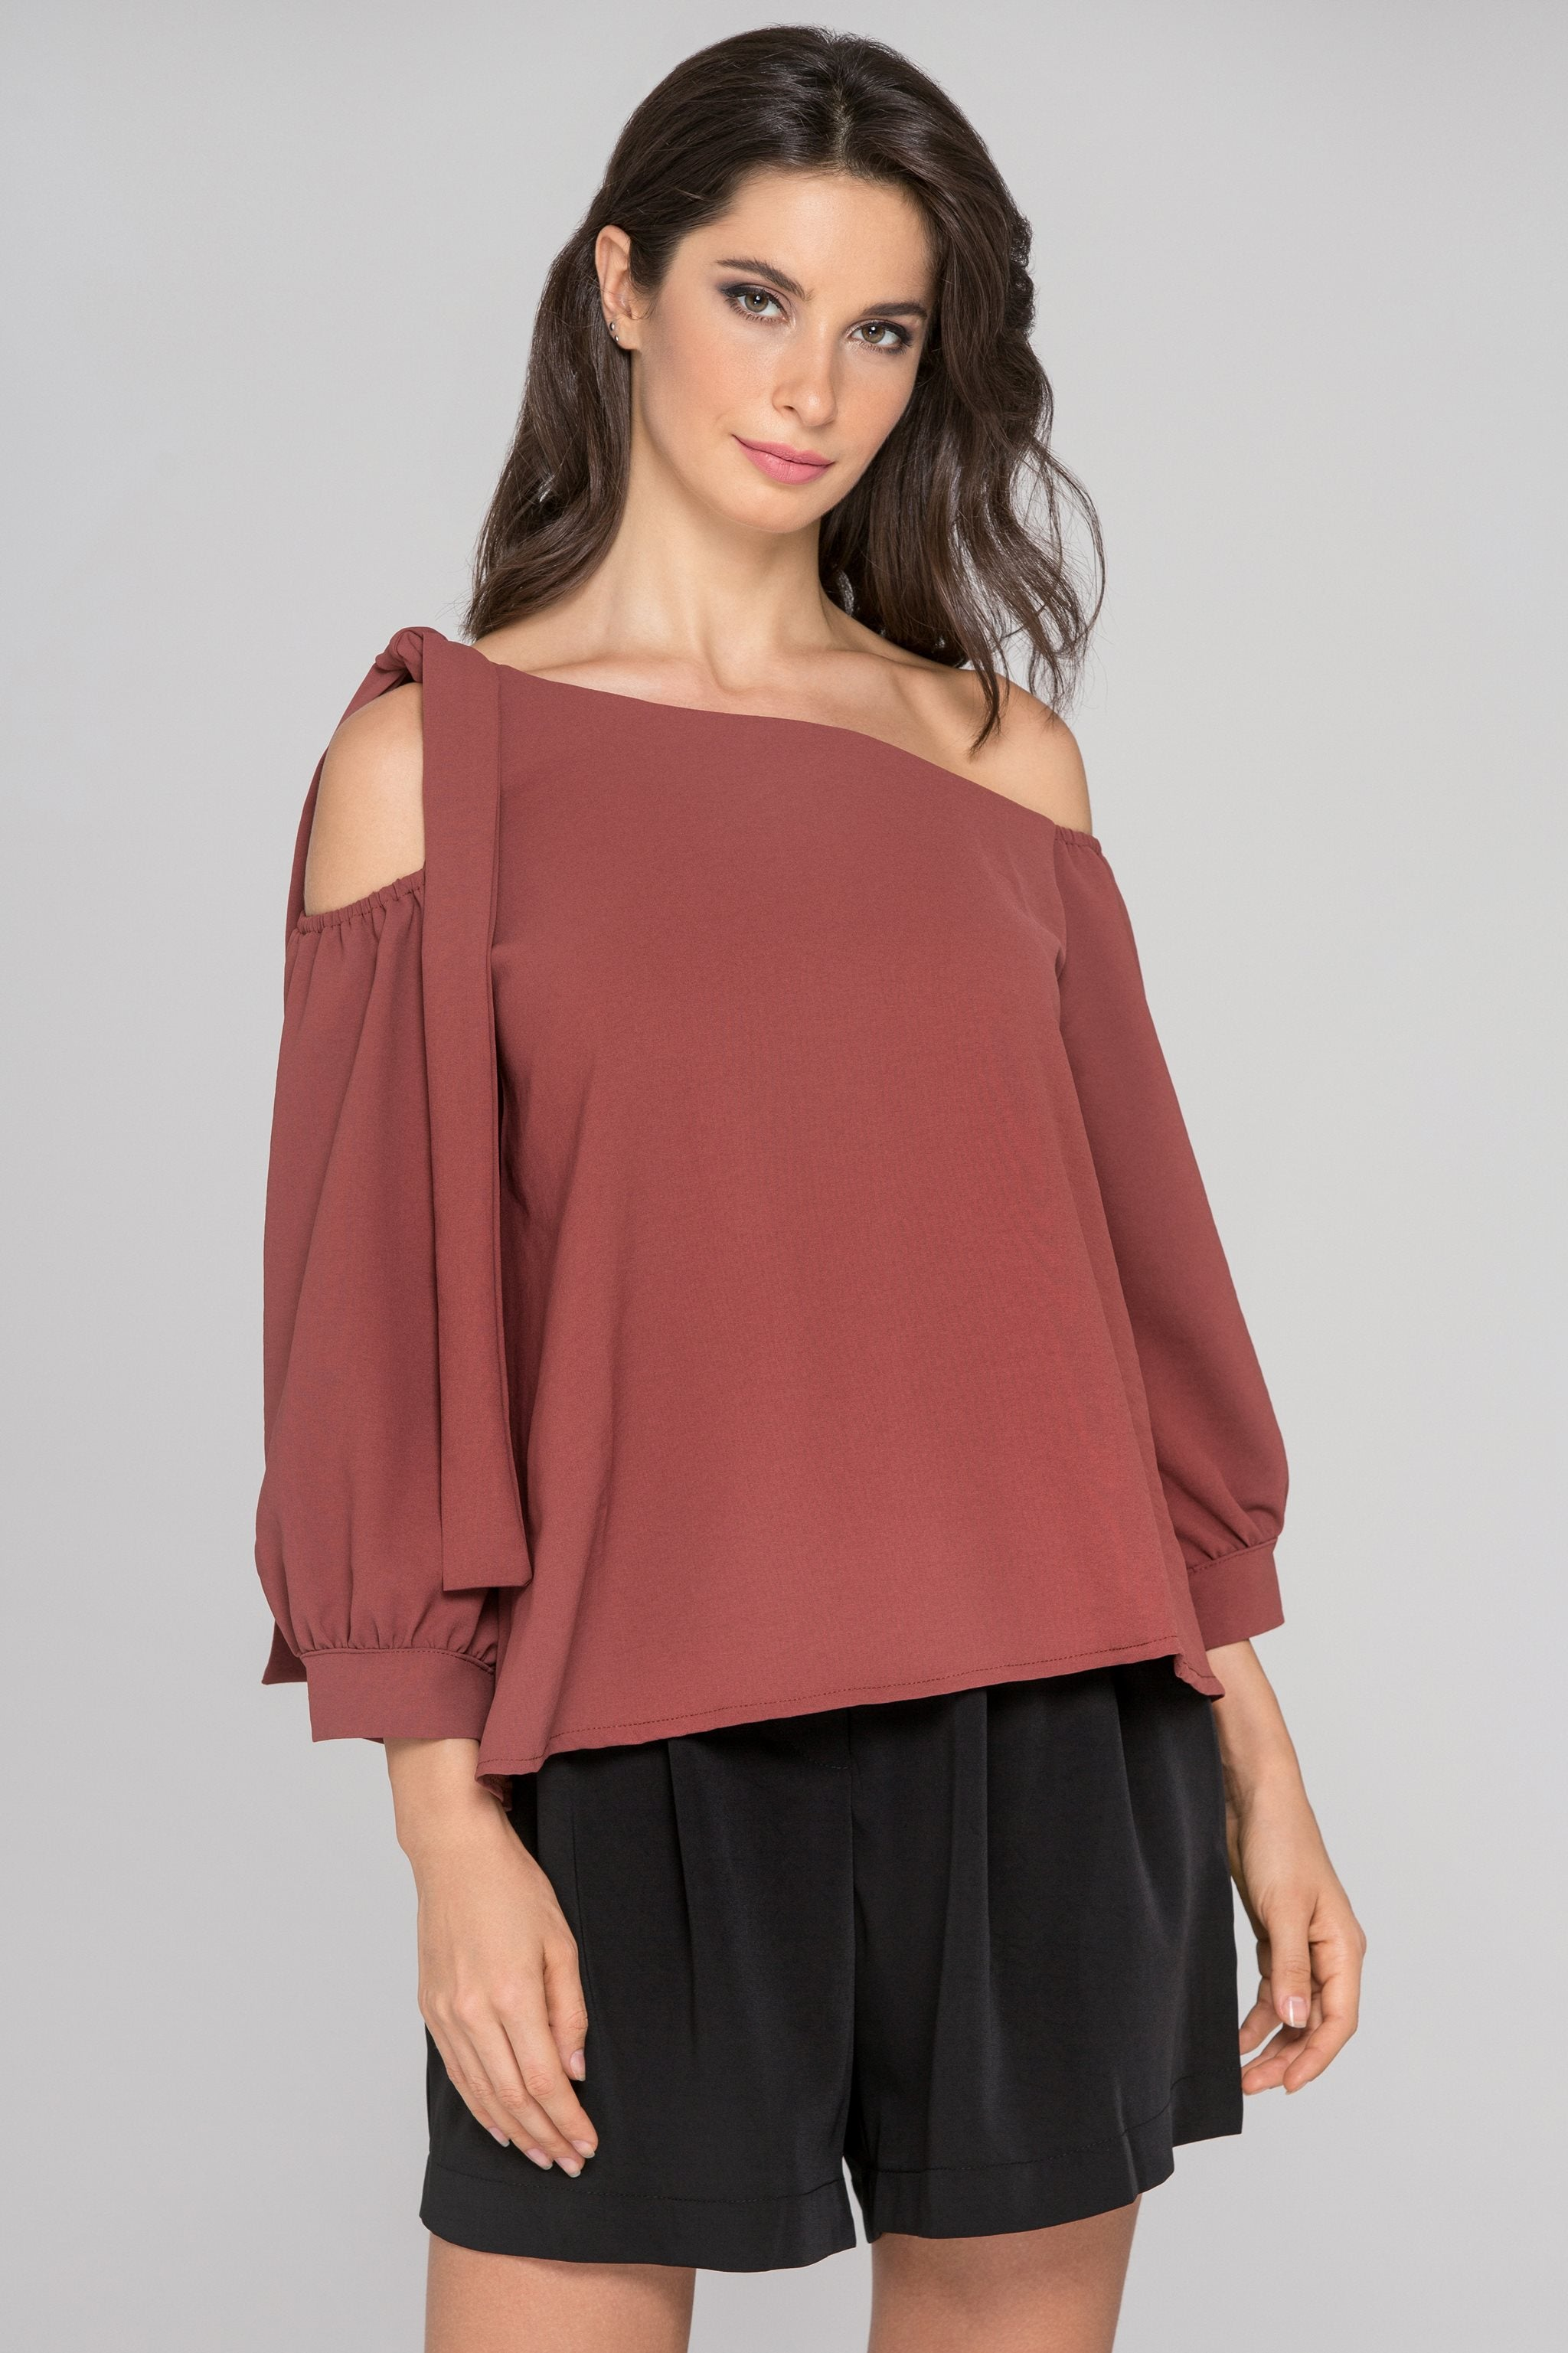 Cinnamon Sleeved One Shoulder Top